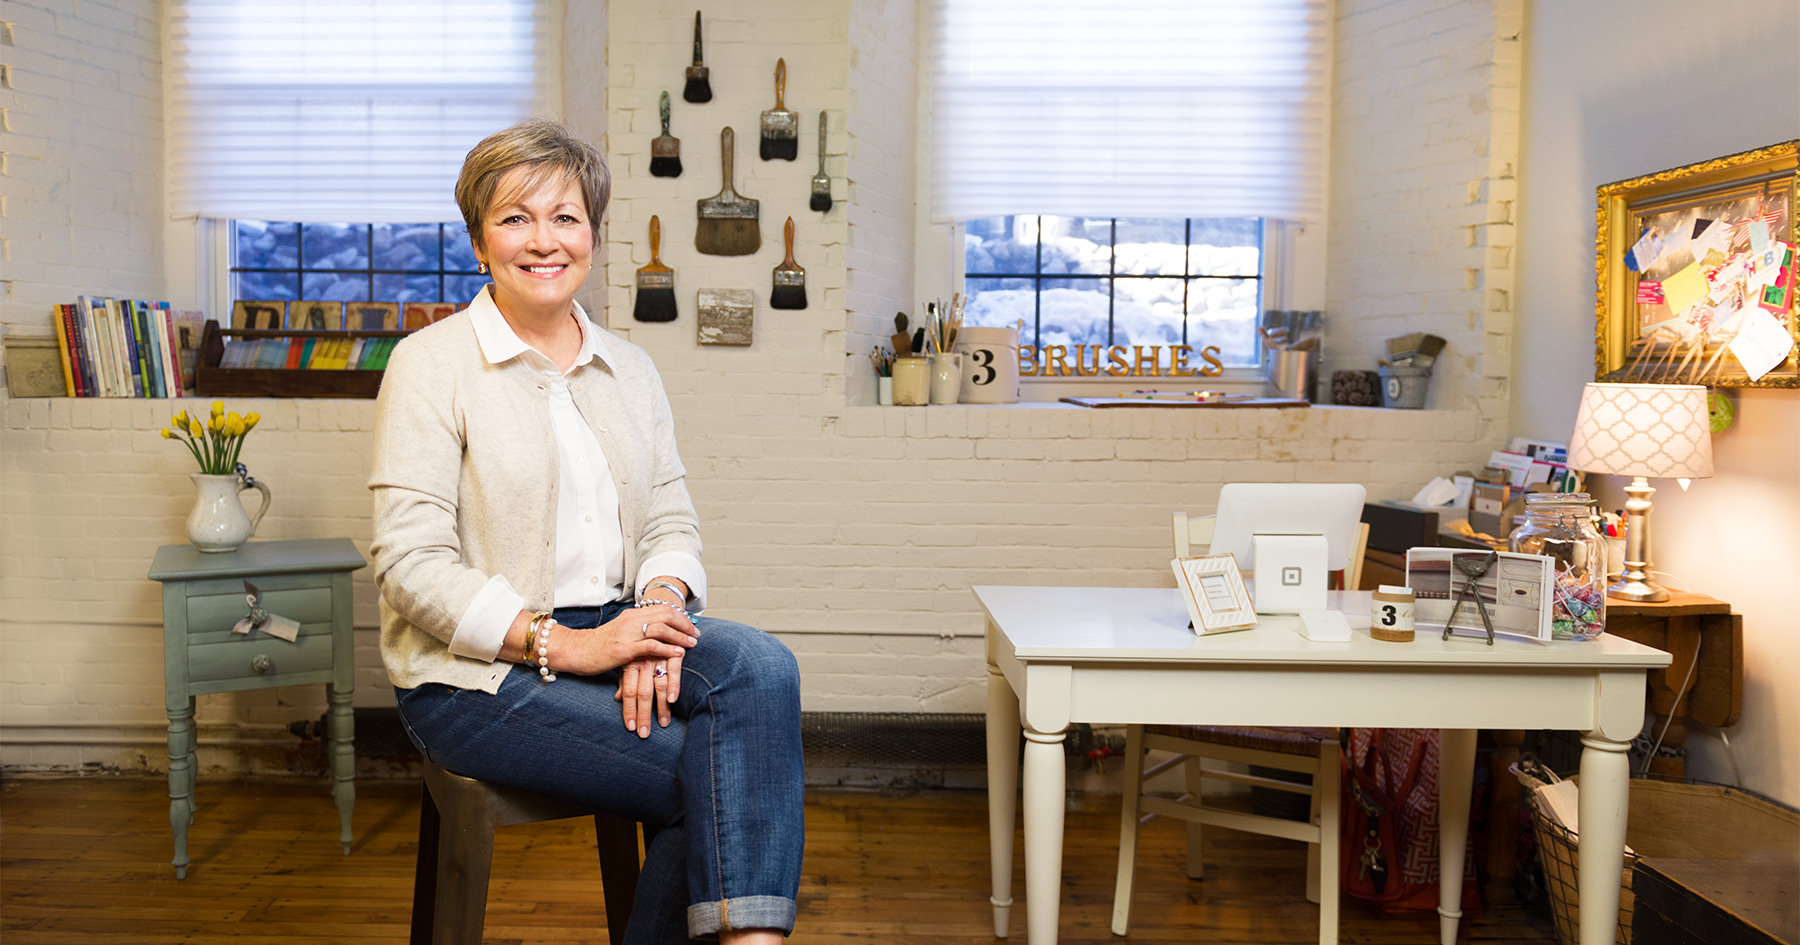 Donna Thomson, photographed by Portland Headshot, standing among some of the hand painted furniture that she creates and sells at the Pepperell Mill Campus.